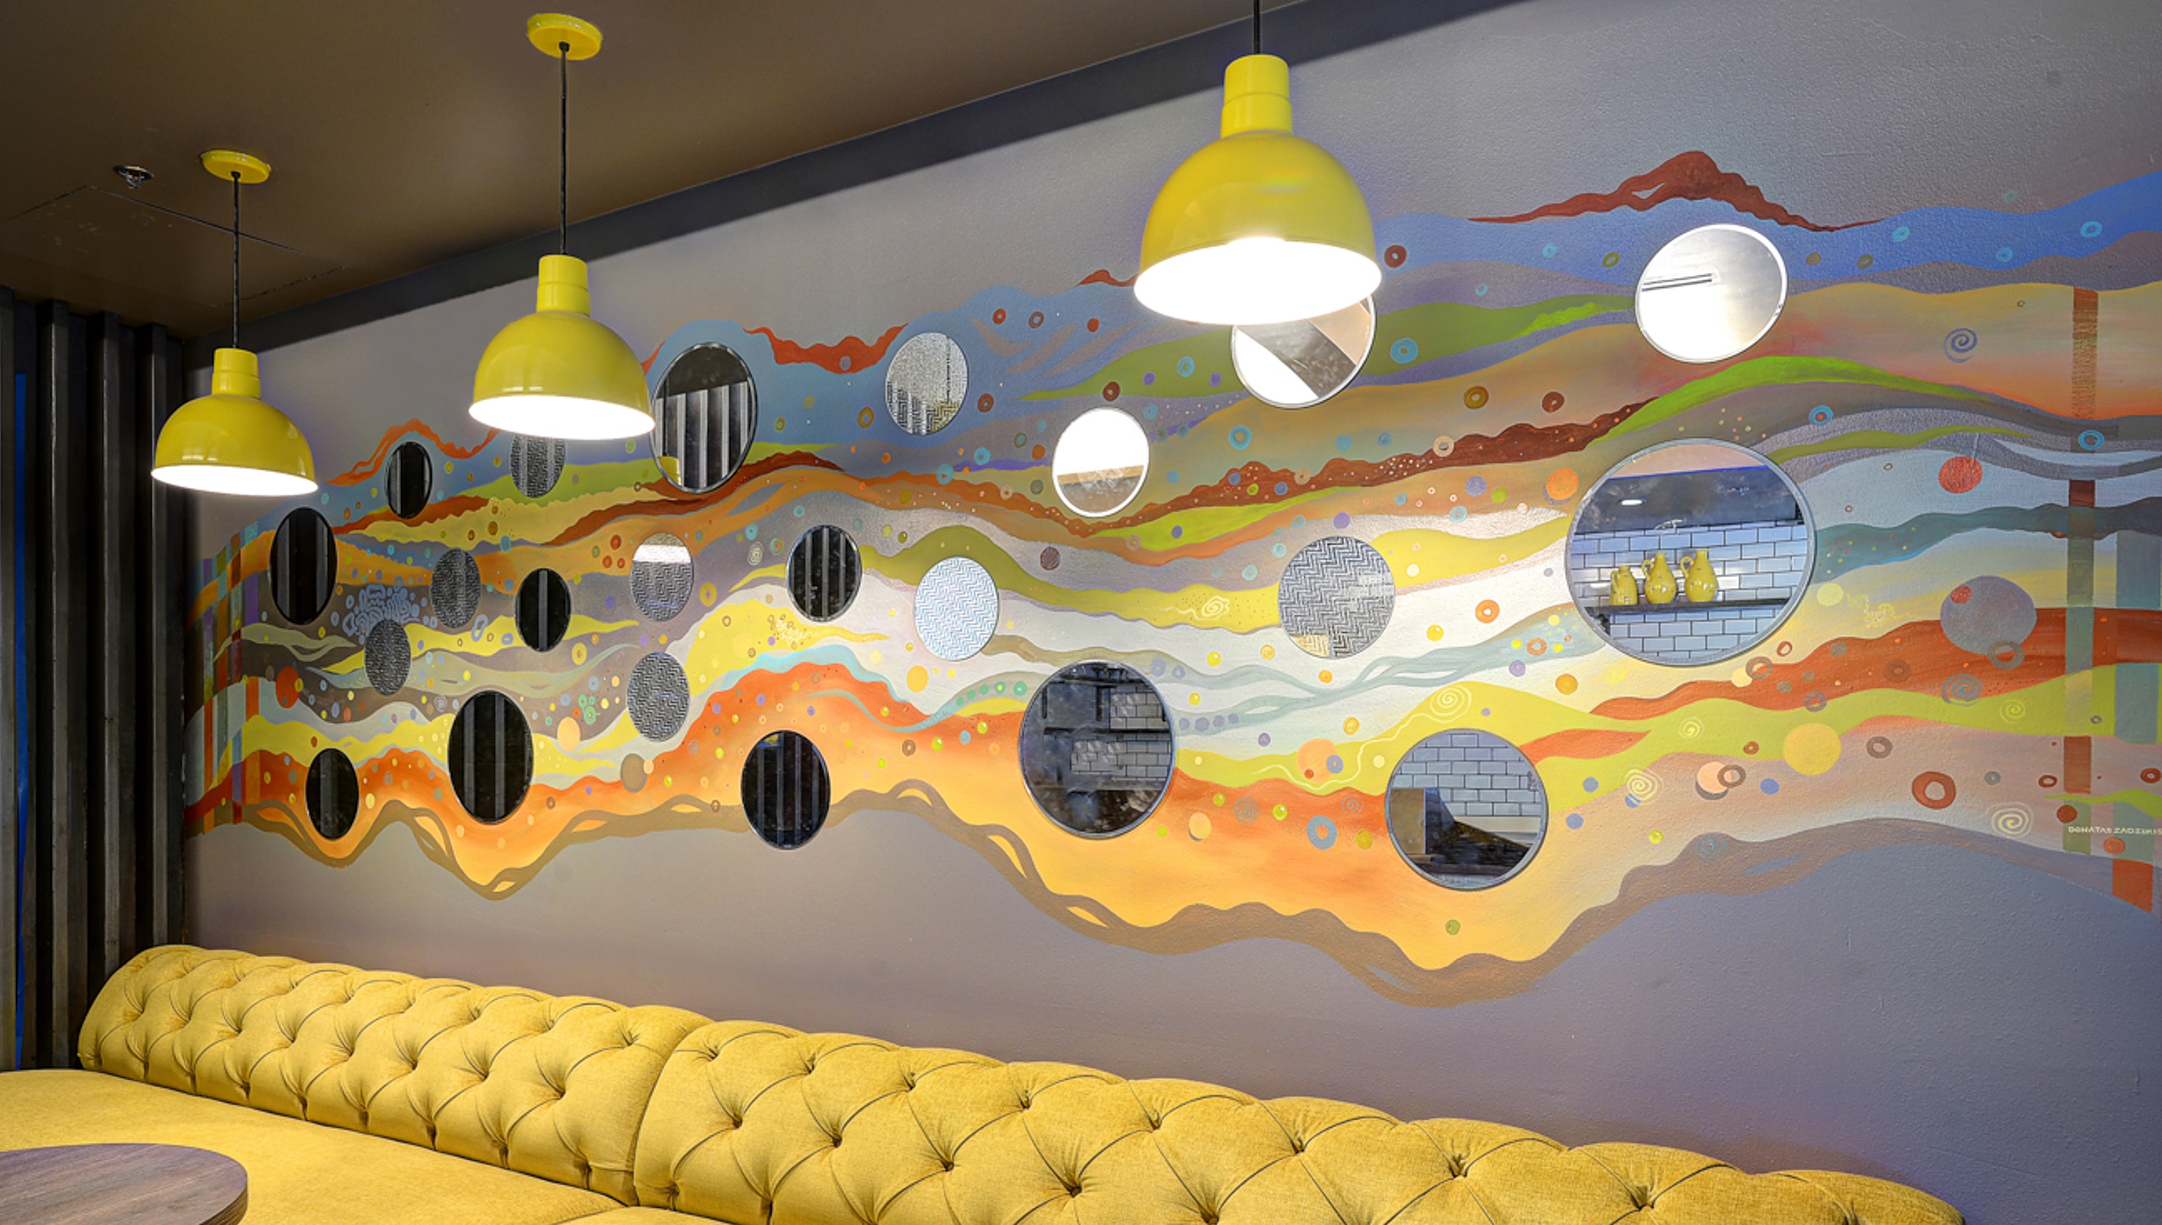 Colorful abstract murals